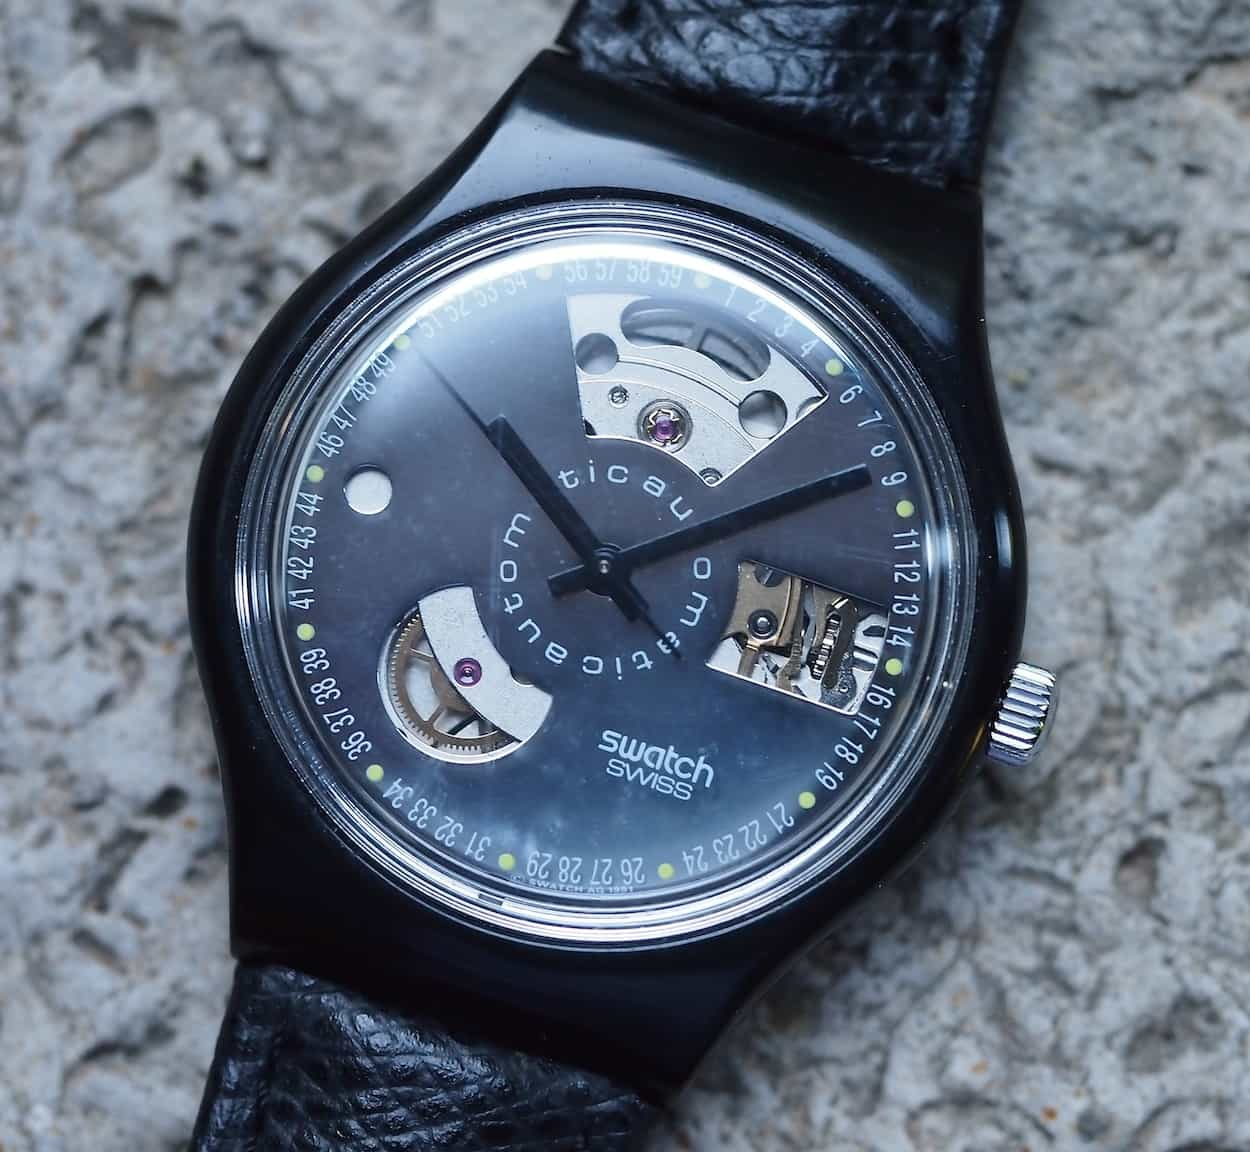 Swatch Automatic exposed dial